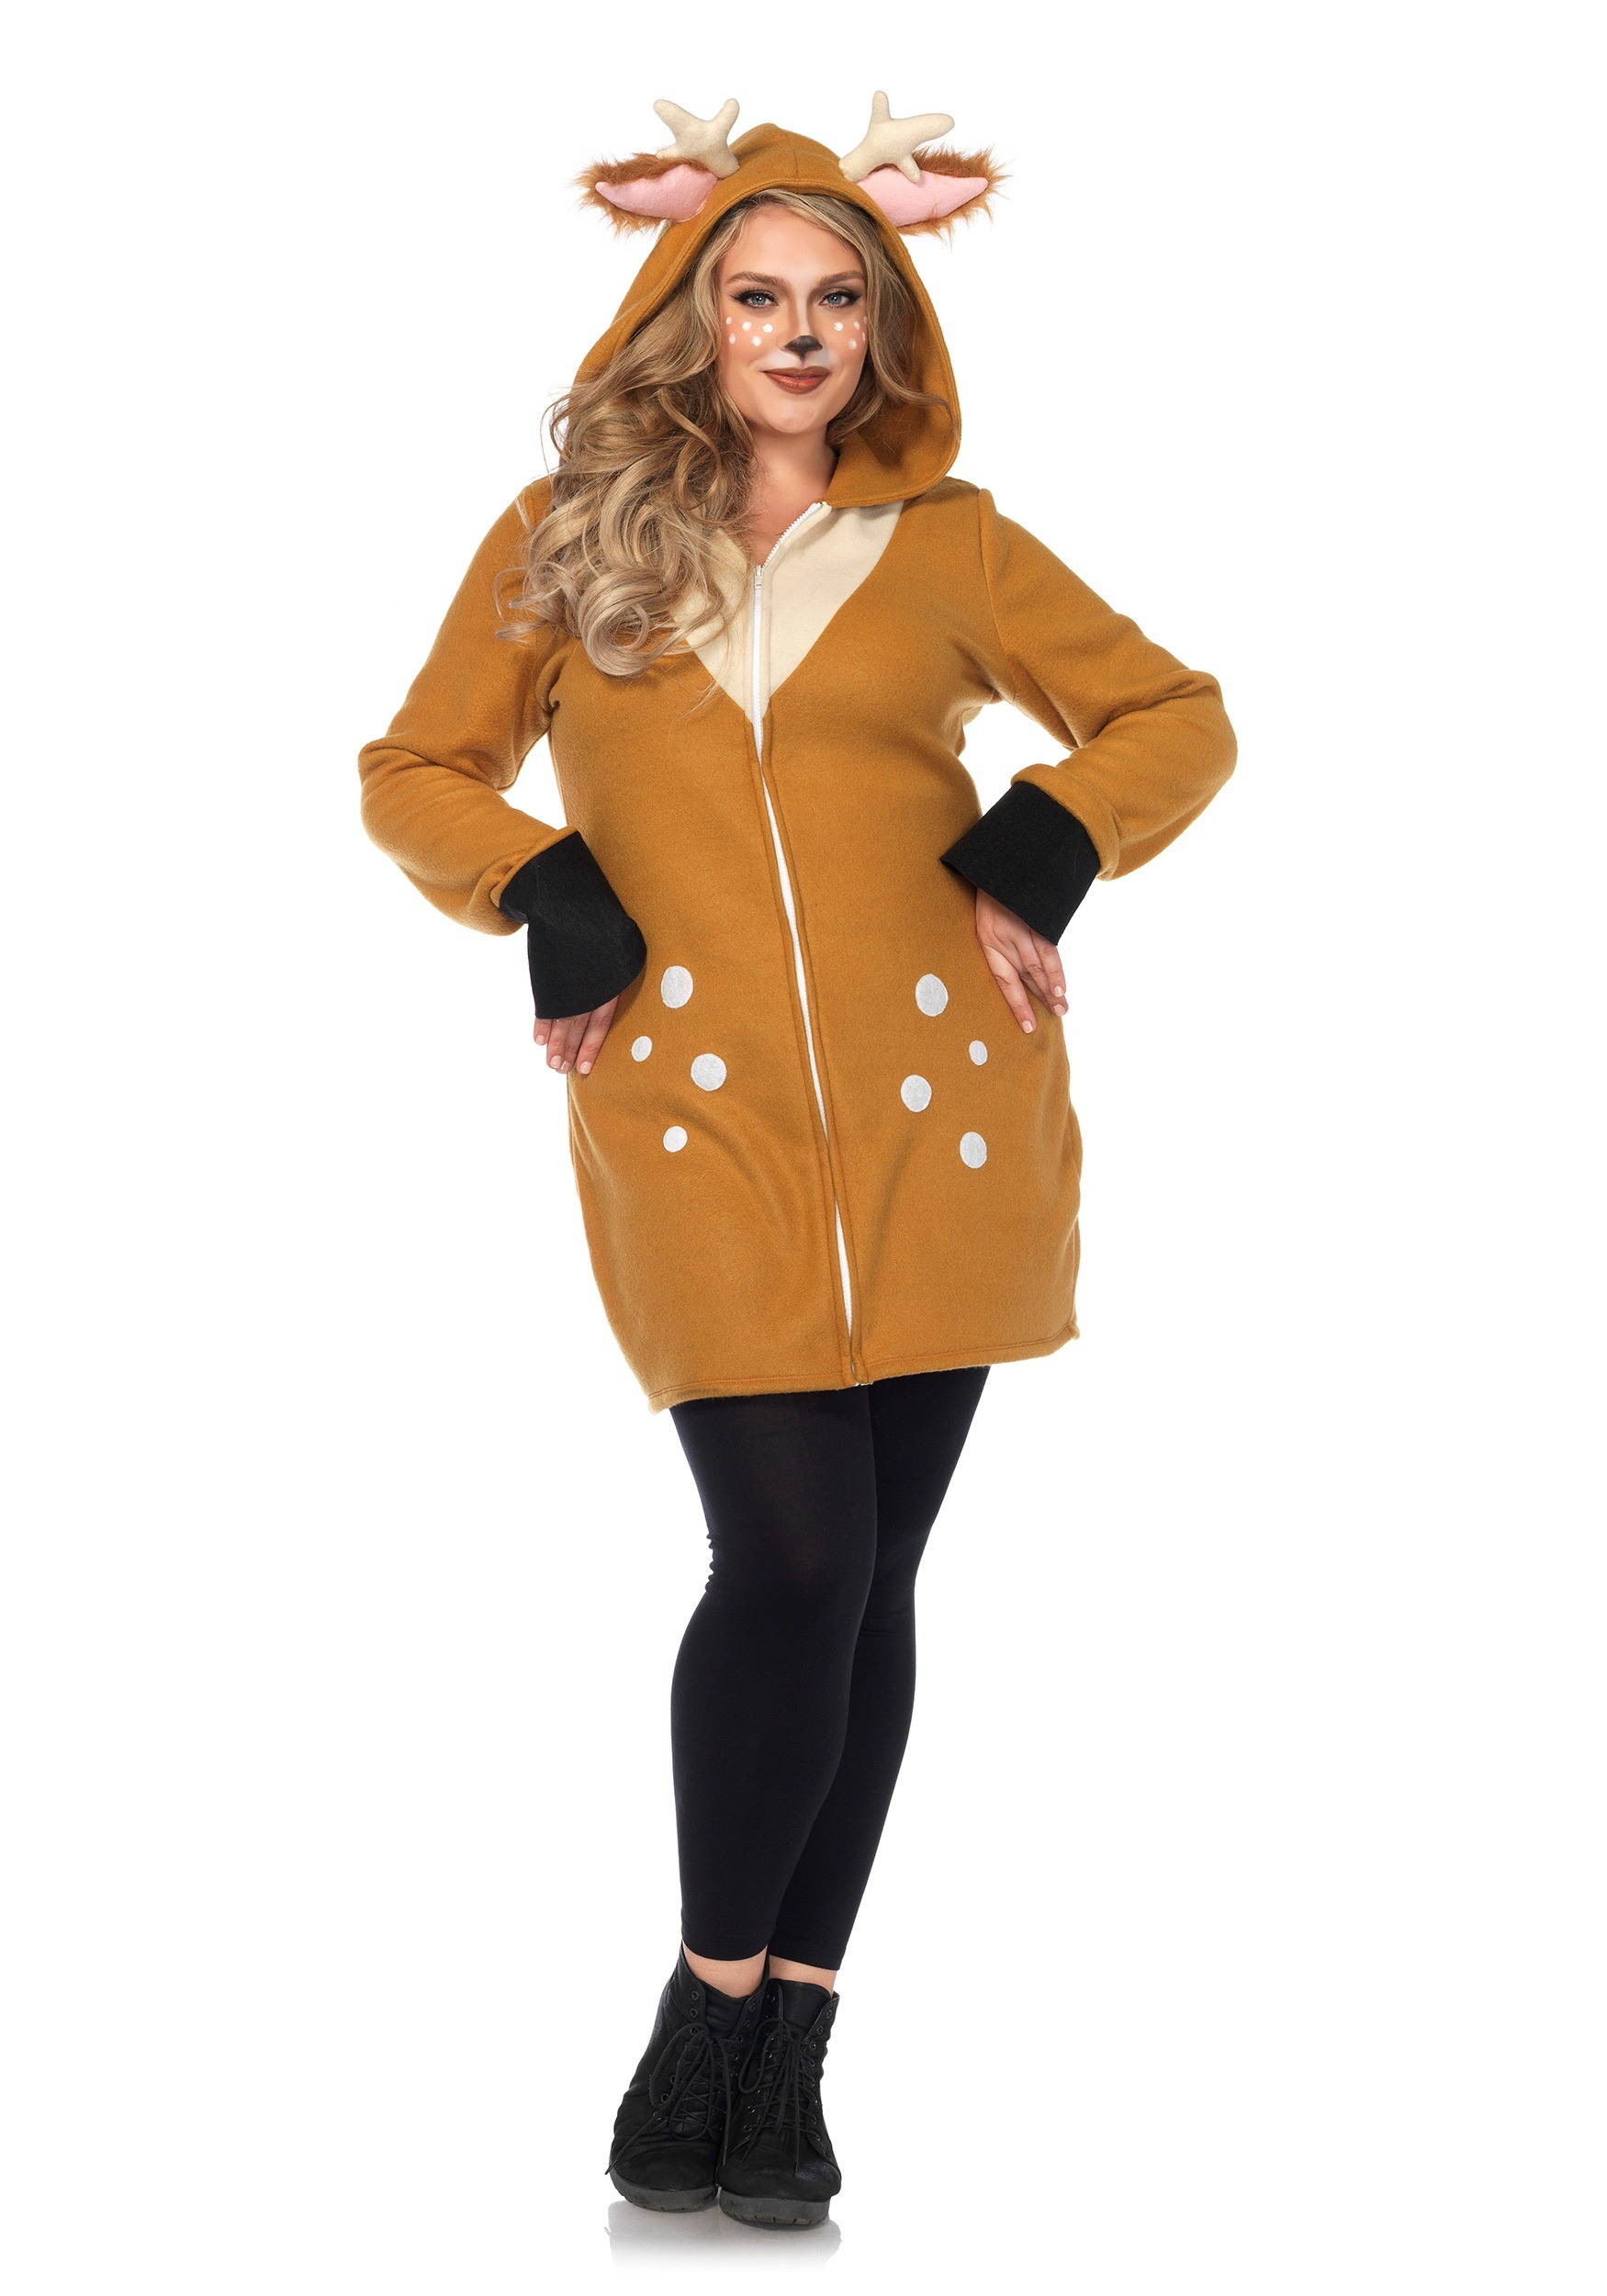 Plus Size Cozy Fawn Costume  sc 1 st  Halloween Costumes UK : pocahontas plus size costume  - Germanpascual.Com